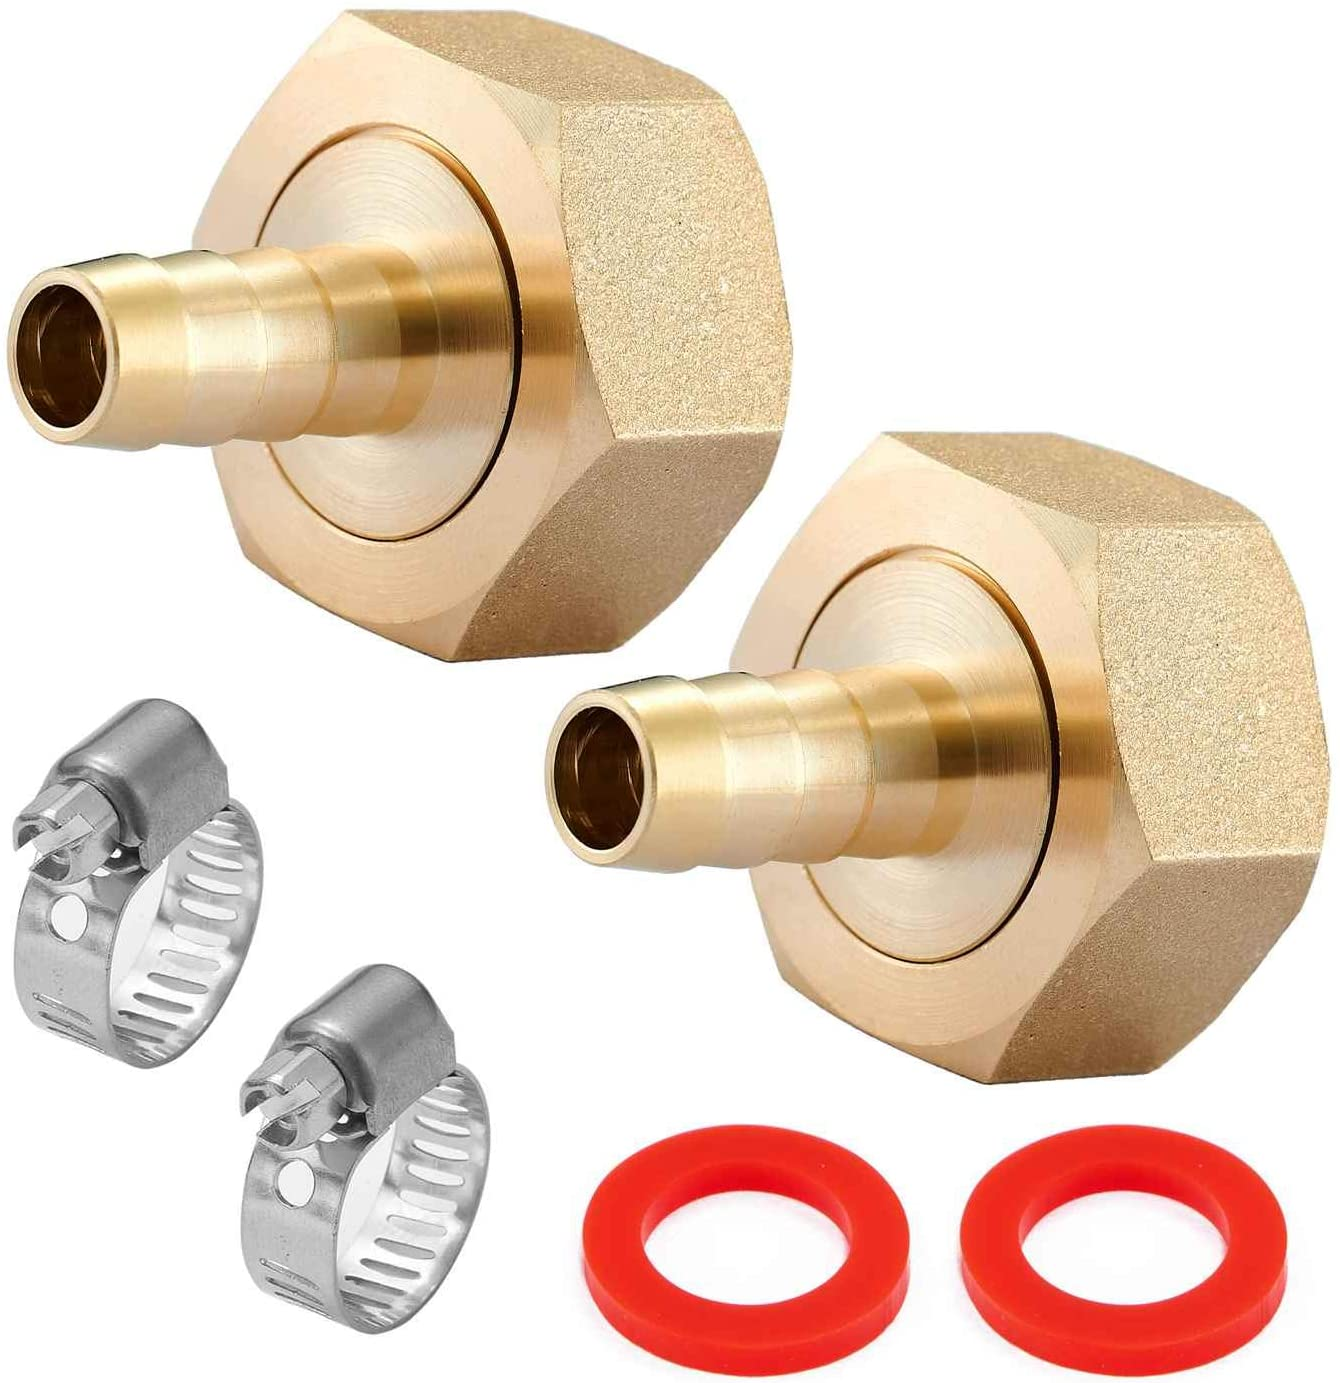 Minimprover 4PCS Lead Free Brass Water Hose Pipe Swivel Connector,3/8